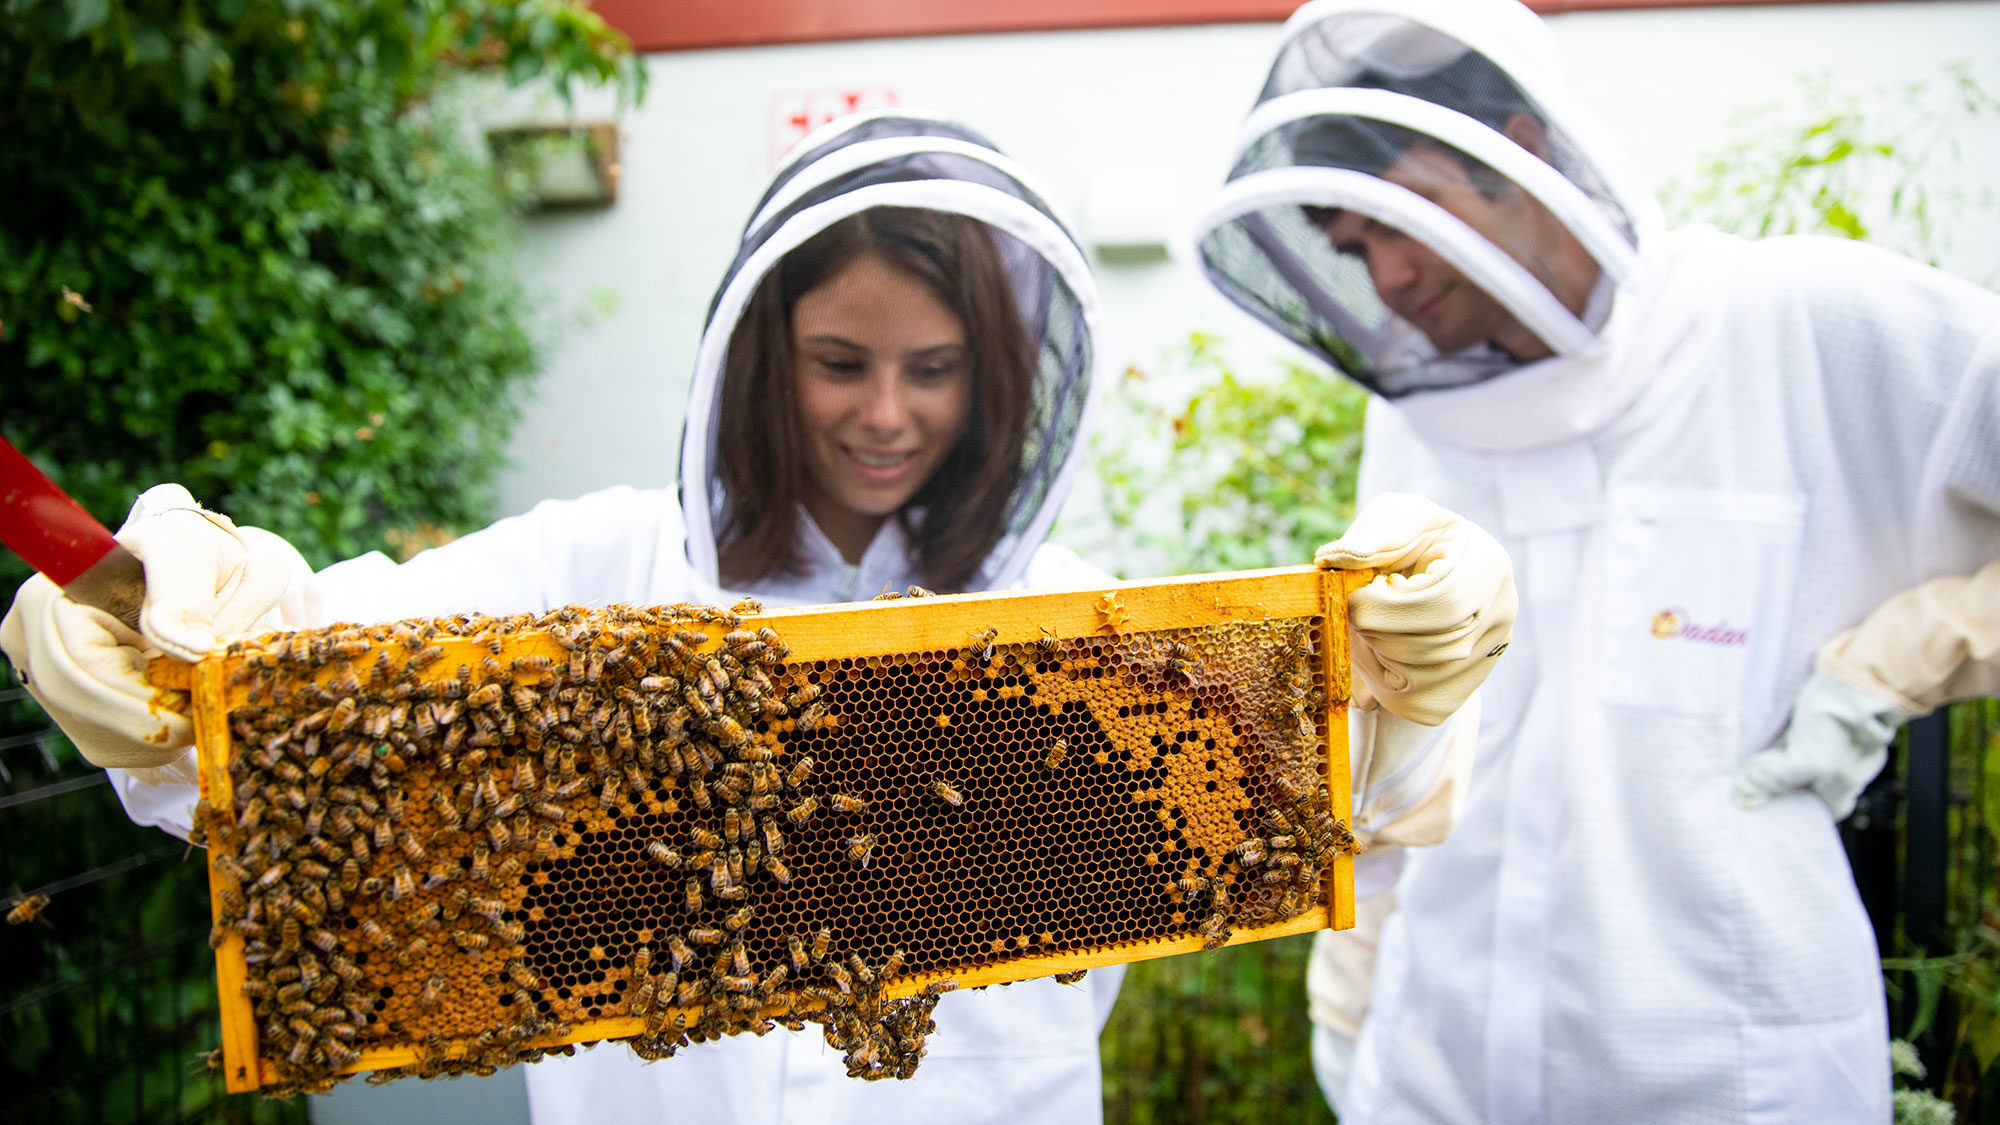 Two students hold a hive filled with bees while wearing protective suits.